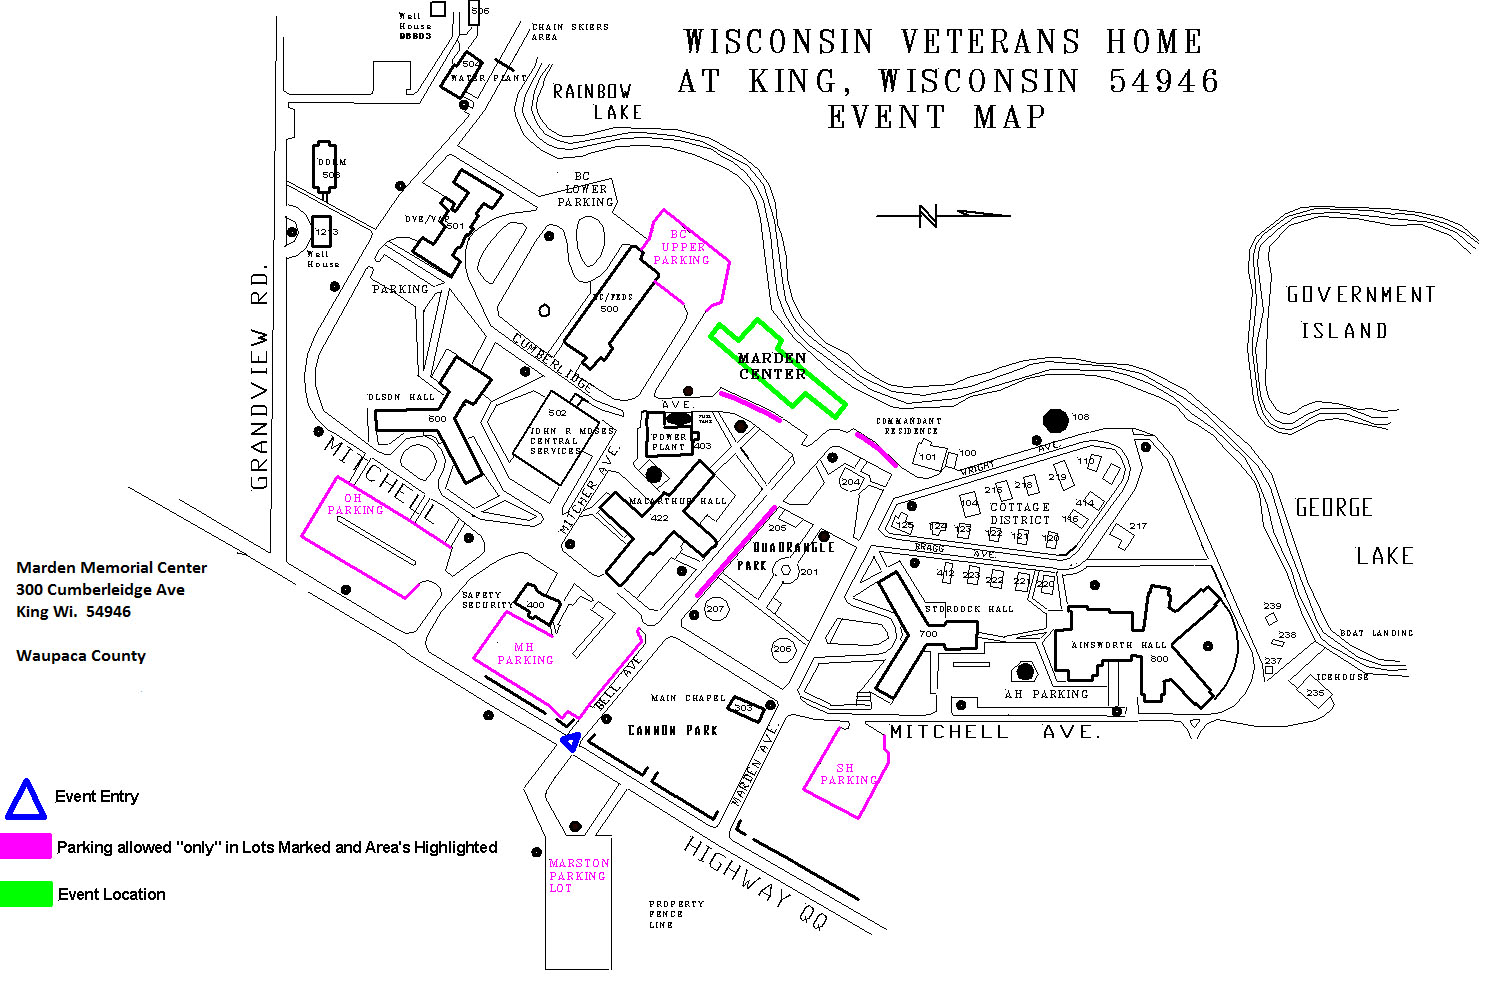 Wisconsin department of veterans affairs wisconsin veterans home king event map xflitez Image collections